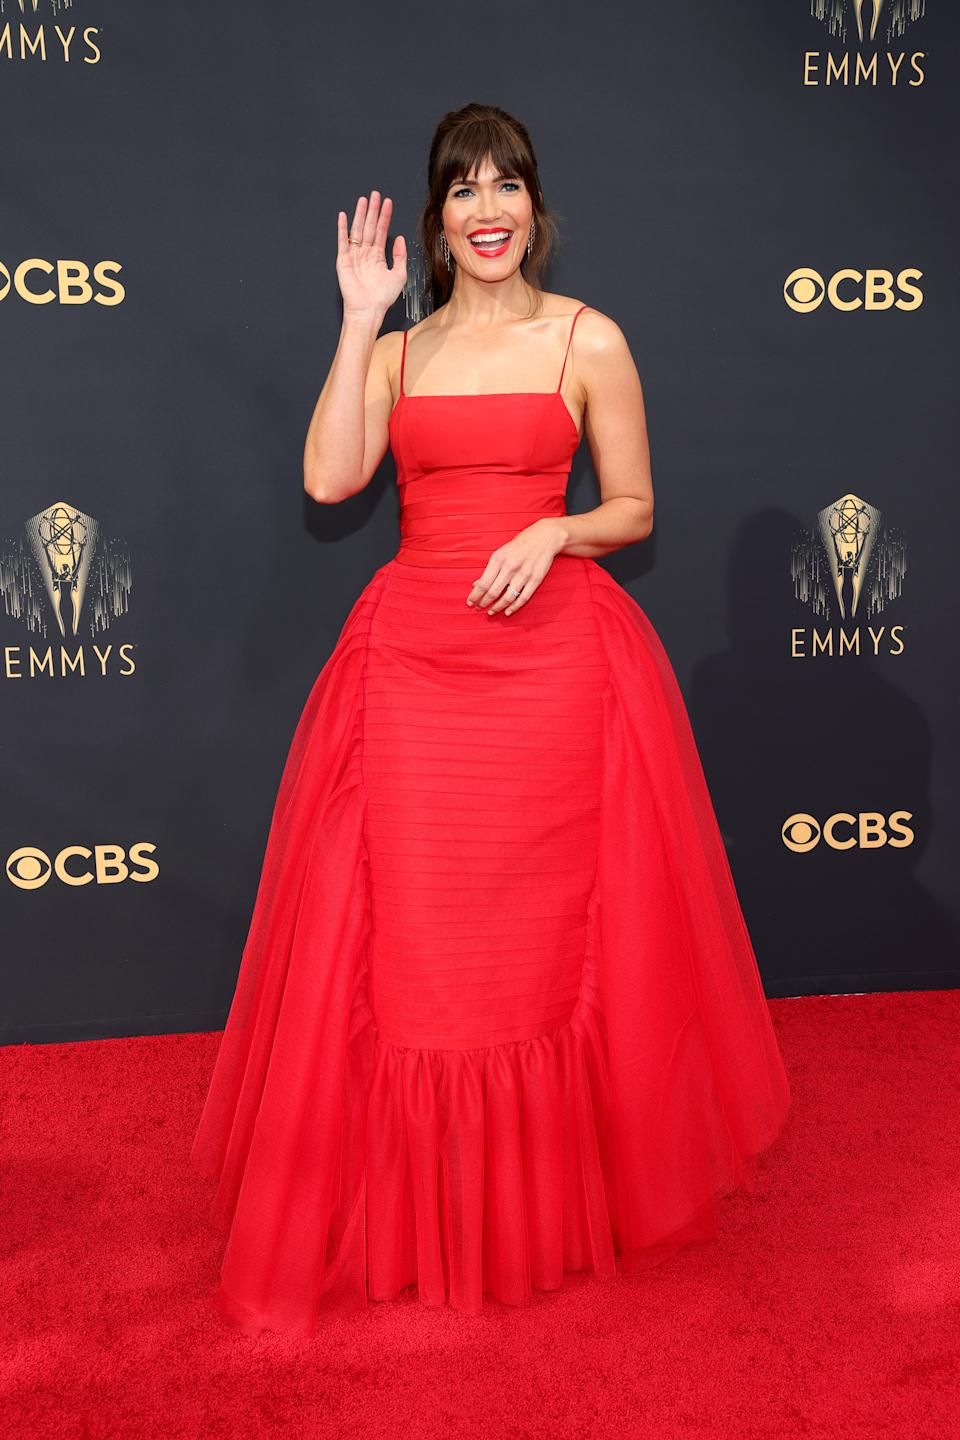 Mandy Moore wears a red dress by Carolina Herrera at the 73rd Primetime Emmy Awards at L.A. LIVE on September 19, 2021 in Los Angeles, California. (Photo by Rich Fury/Getty Images)